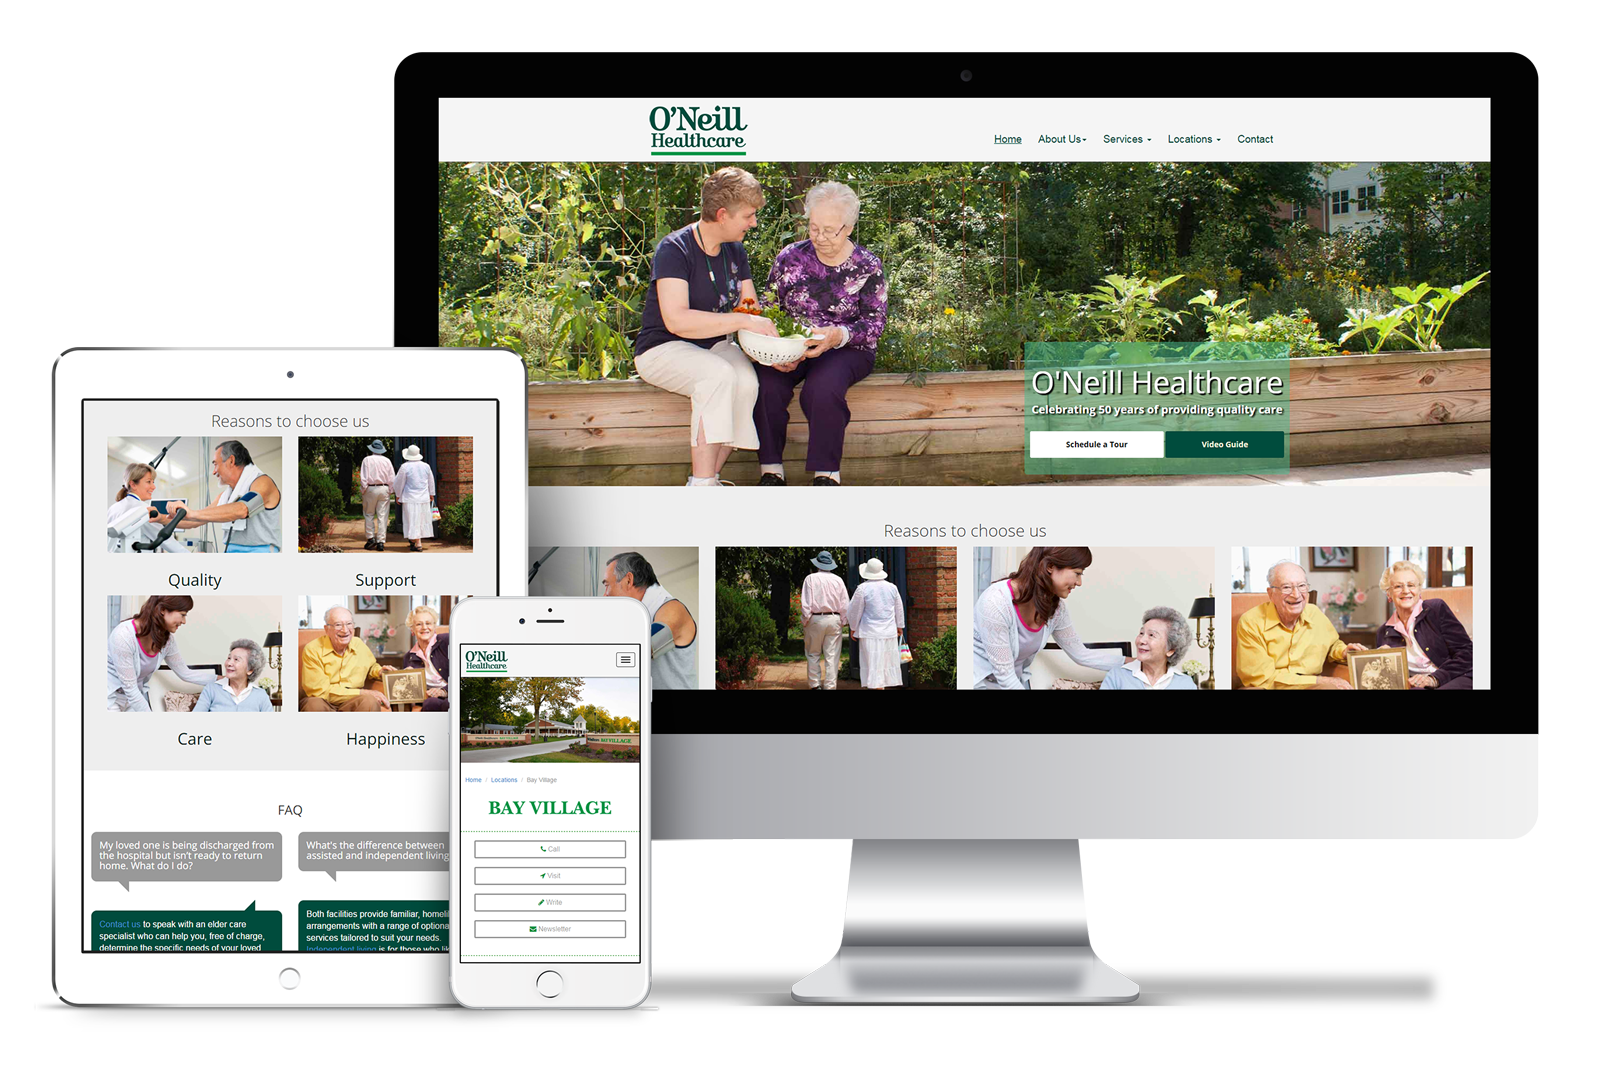 O'Neill Healthcare website mockup